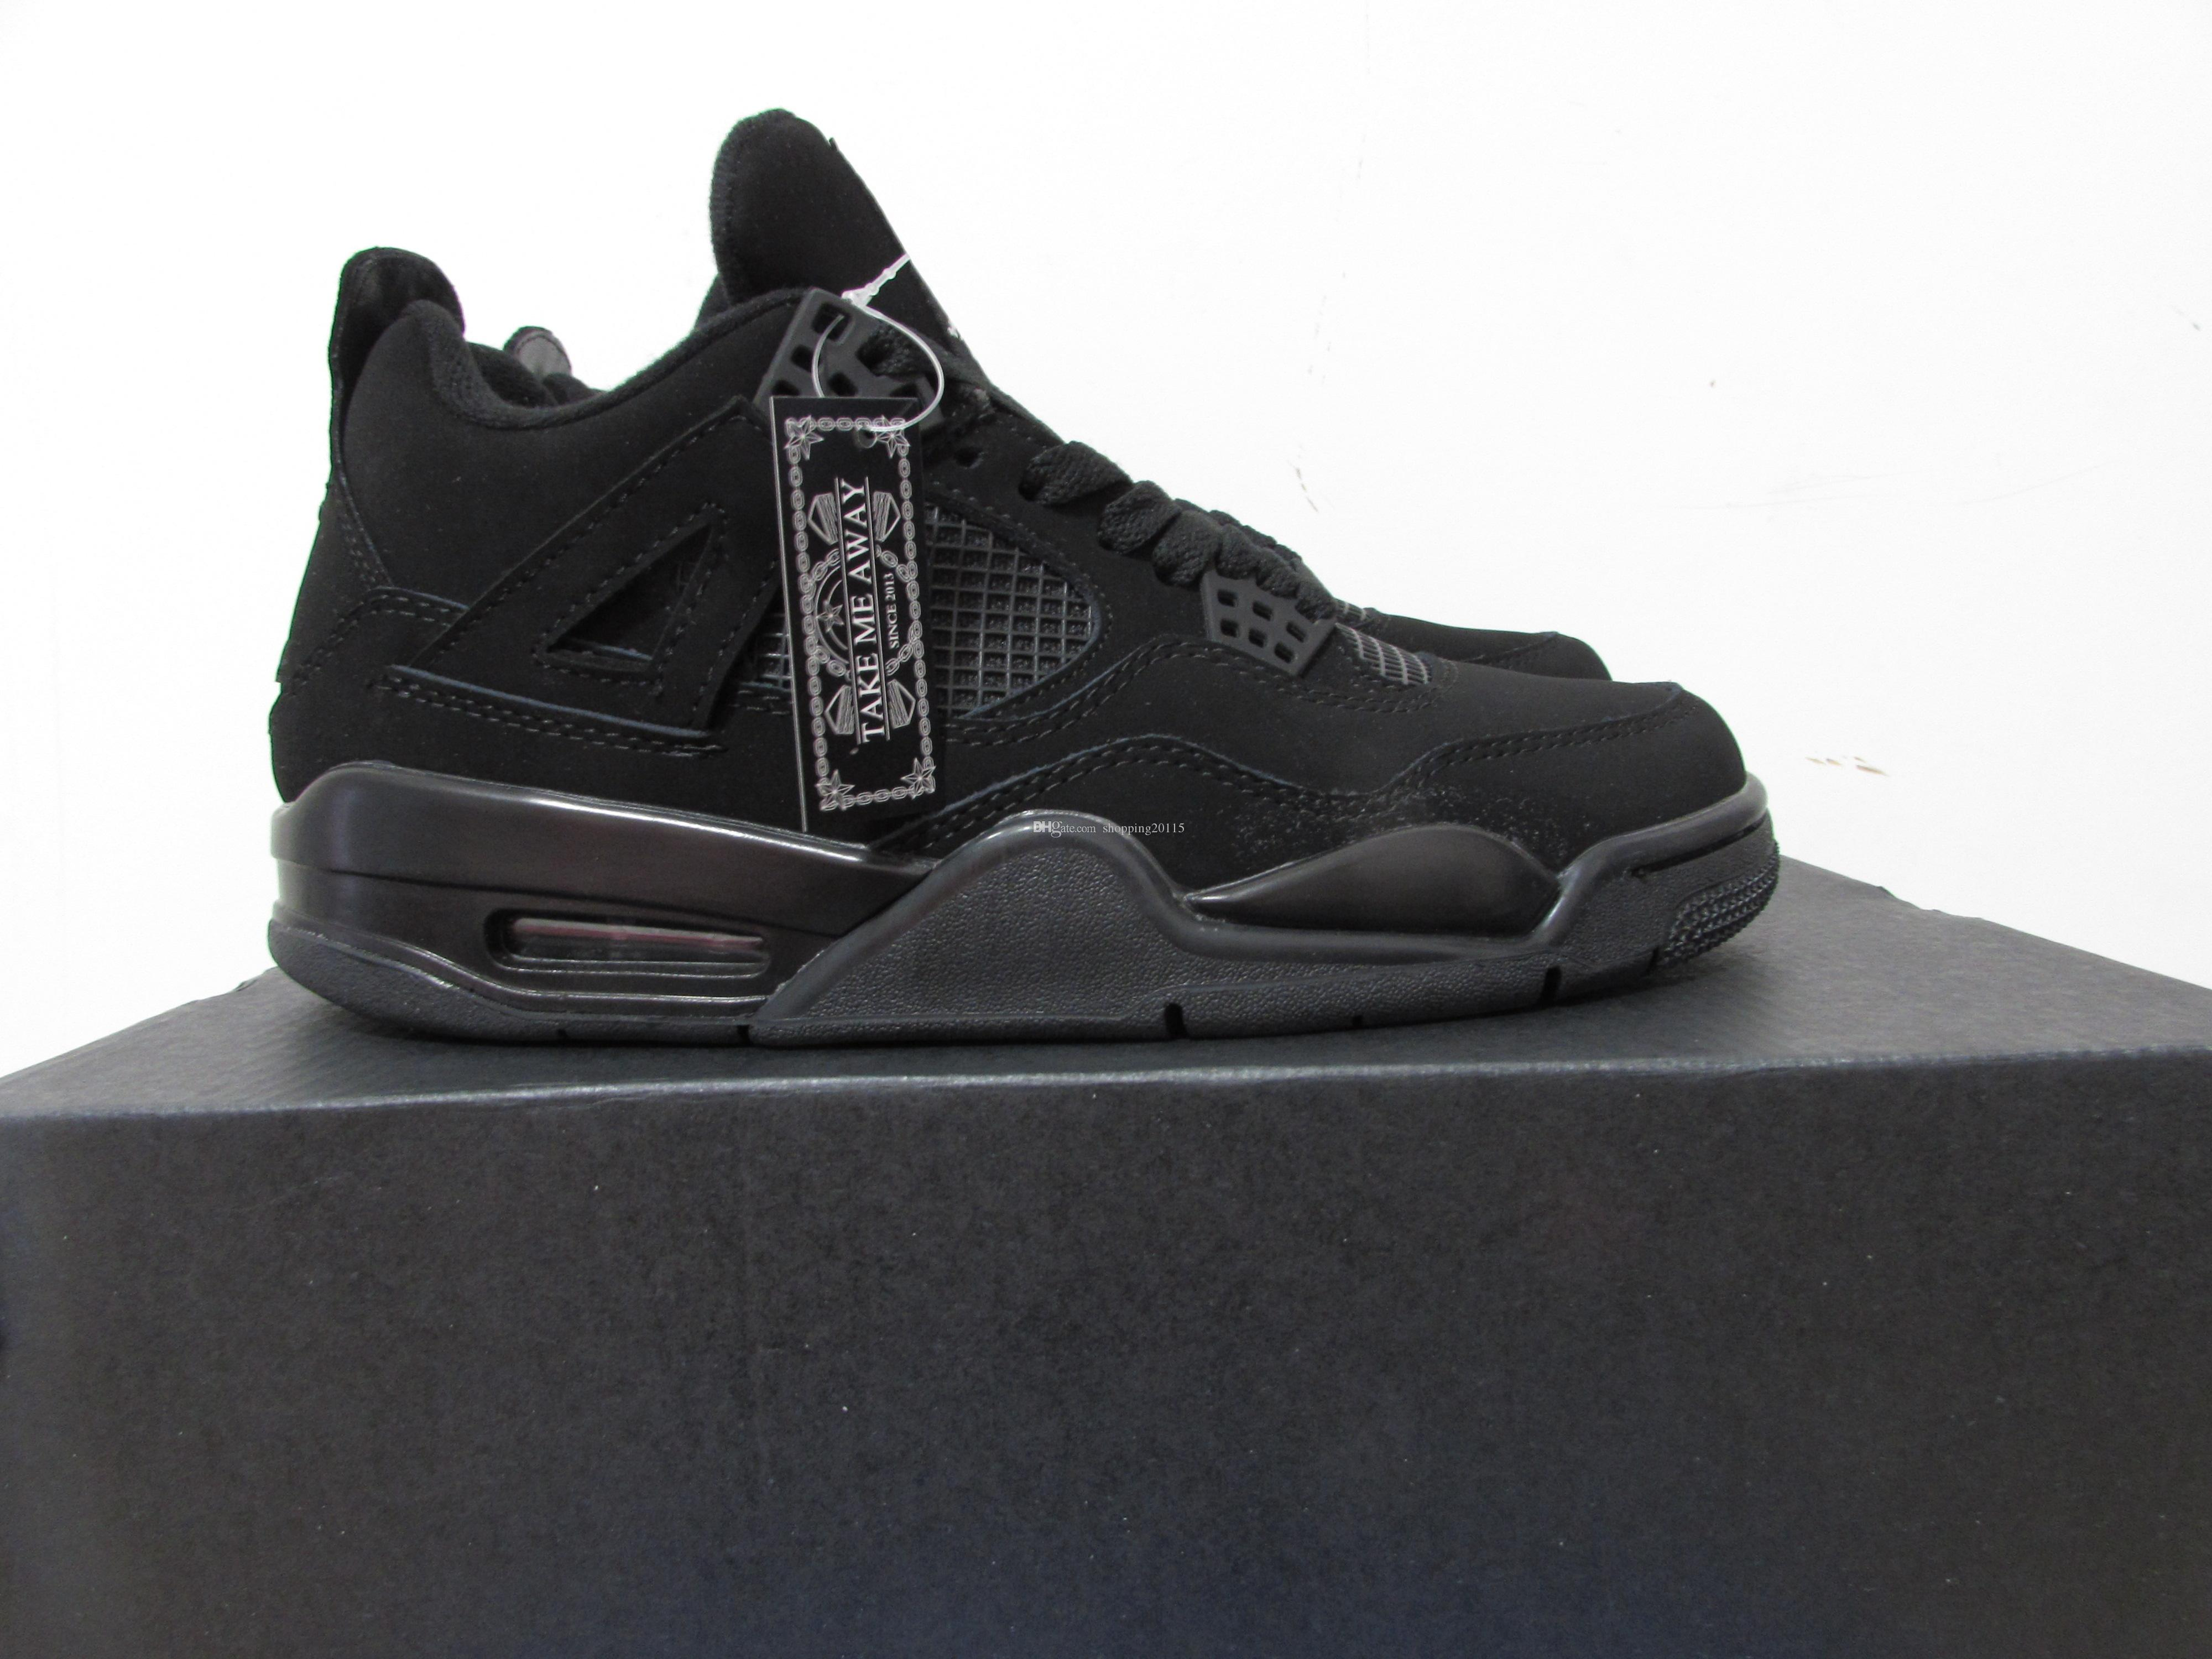 623d08a16a5 ... 2af98479991bc3 Hot Sale 4 IV Black Cat Mens Basketball Shoes High  Quality 4s Sports .